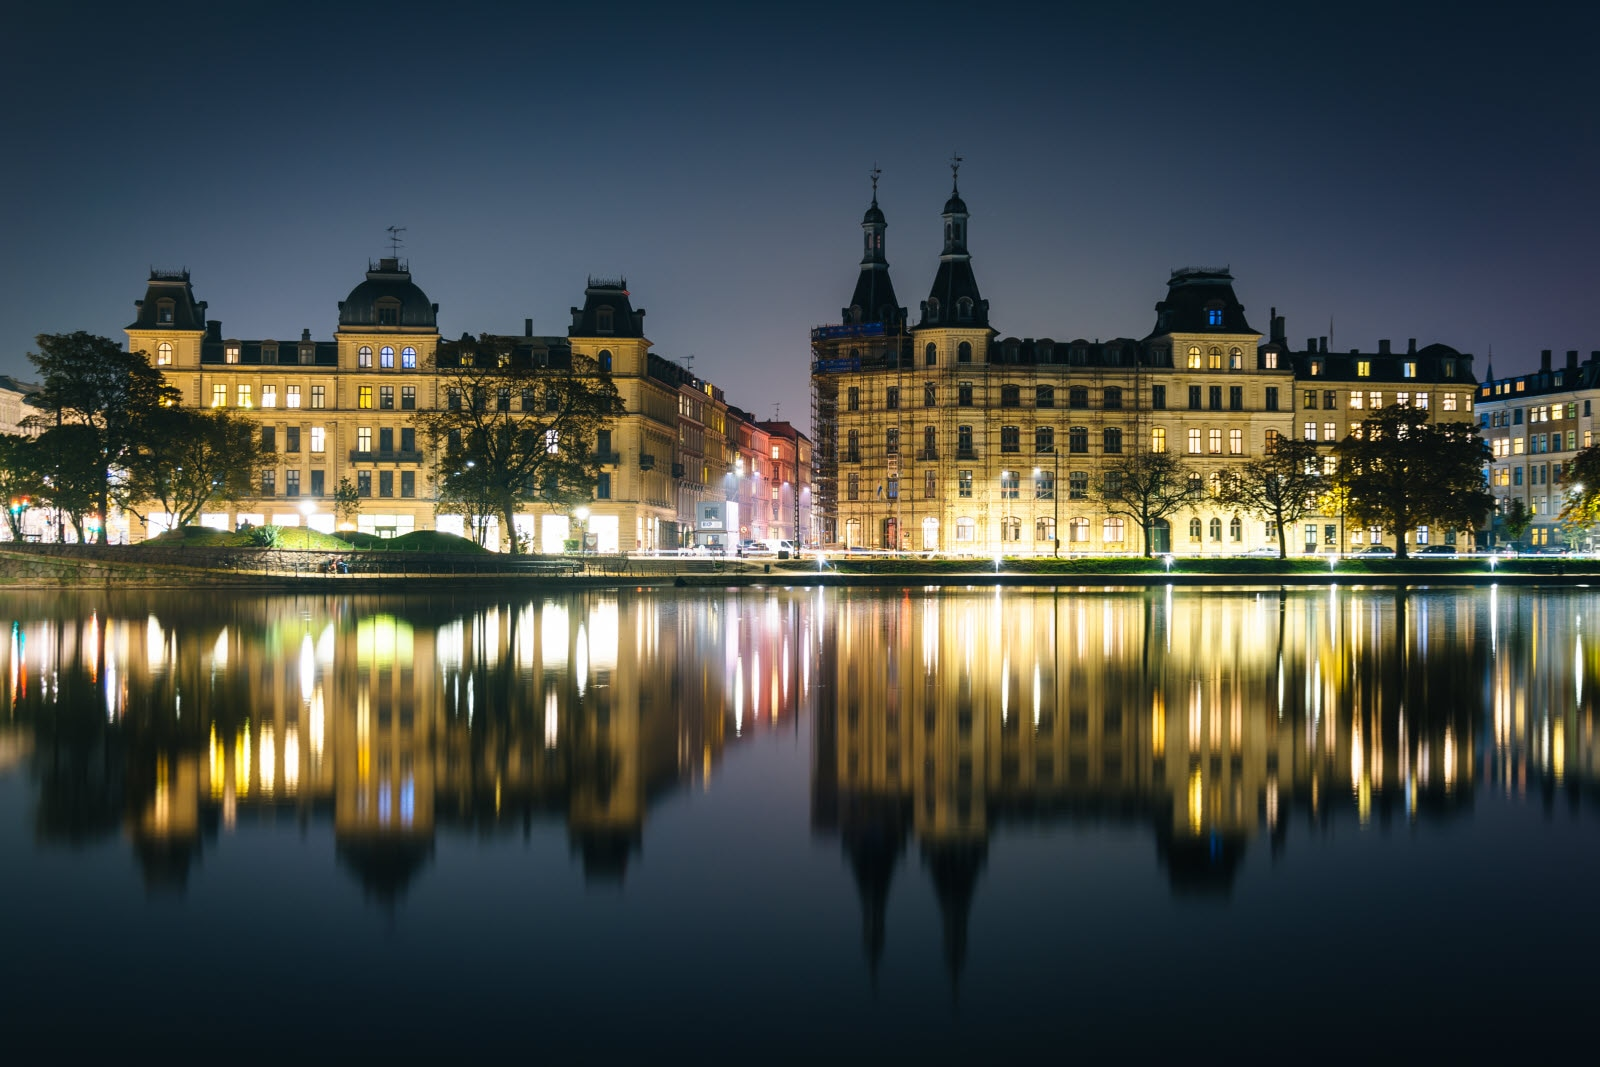 Buildings along Peblinge Sø at night, in Copenhagen.